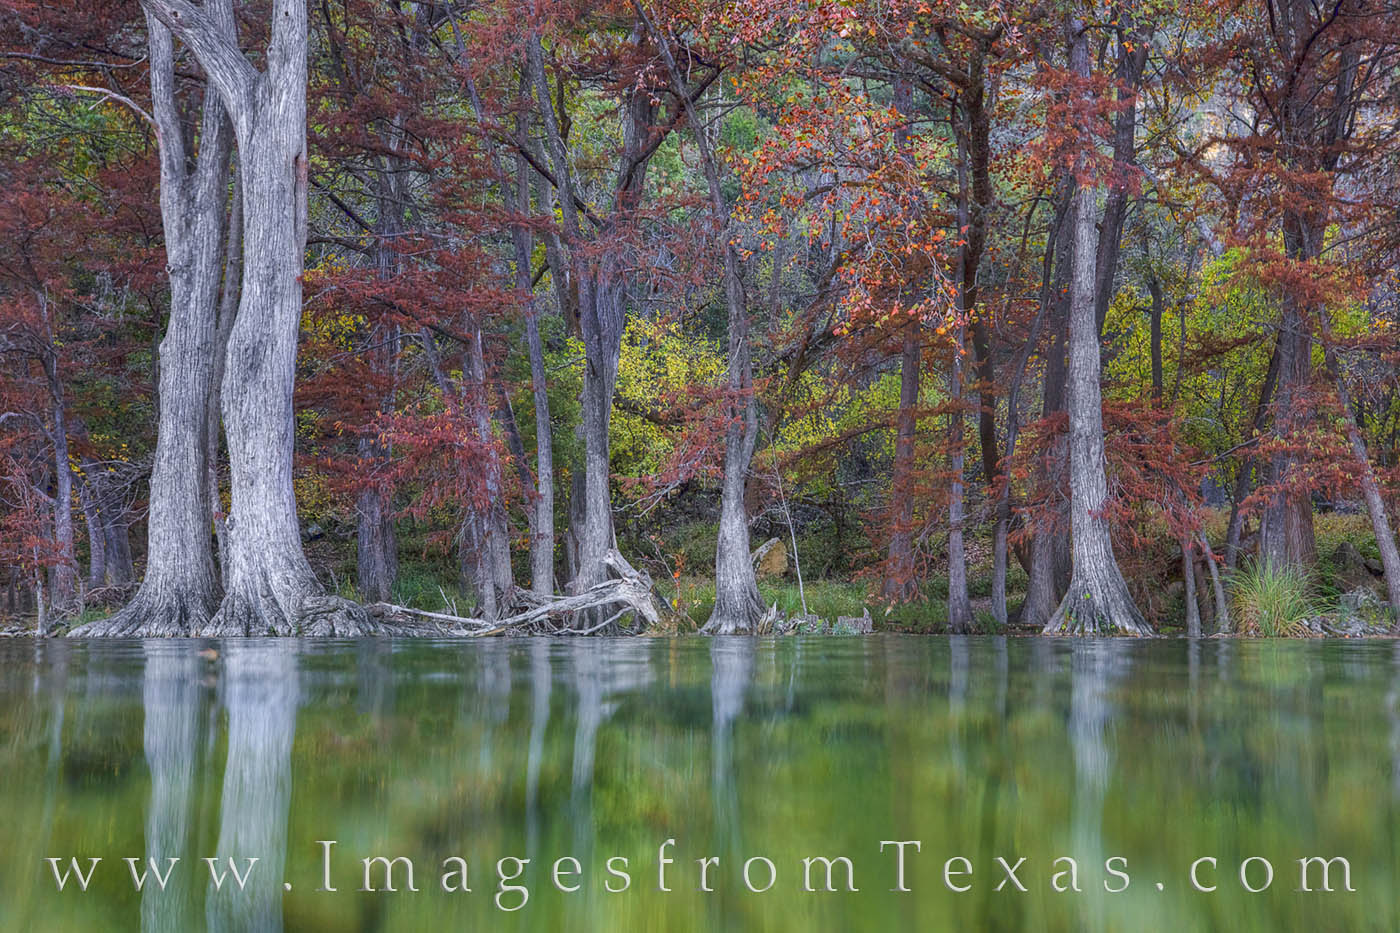 garner state park, autumn colors, texas hill country, fall colors, texas fall colors, frio river, frio river images, water, beneath the water, photo